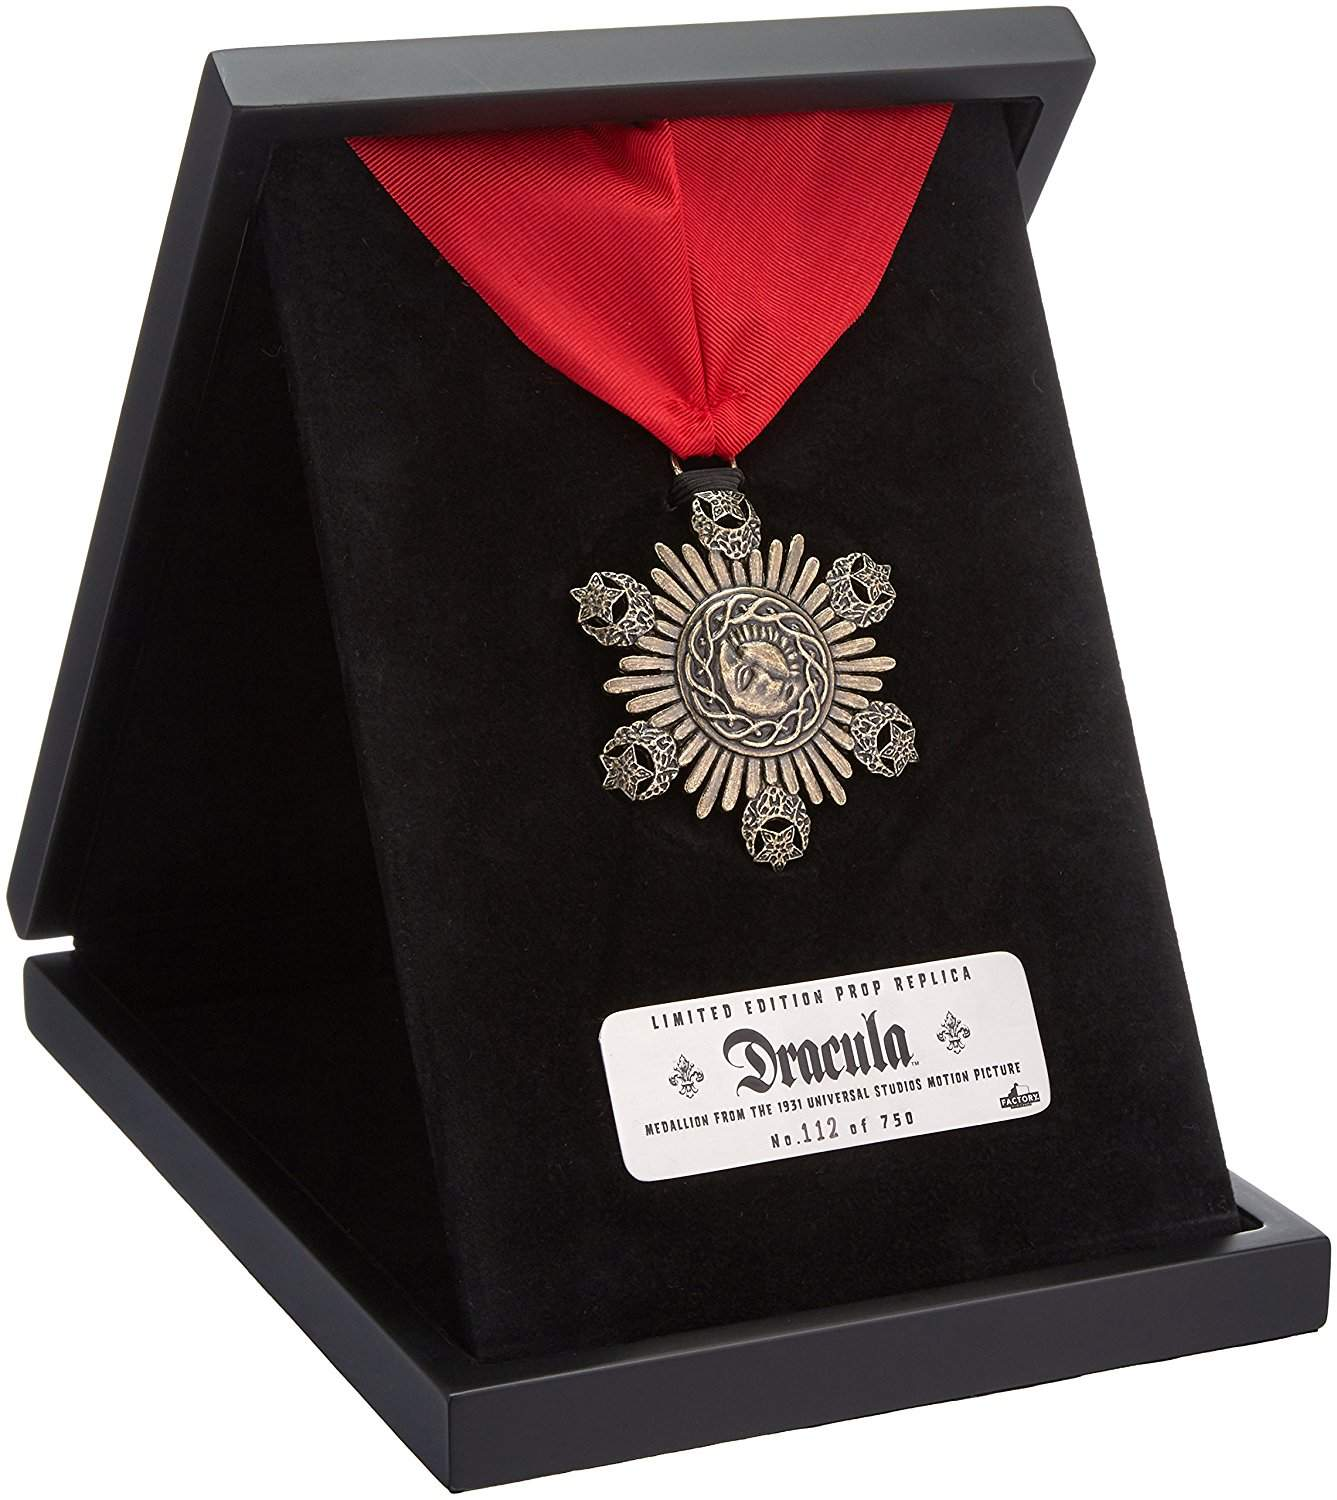 Dracula Medallion Prop Replica (Limited Edition of 750)